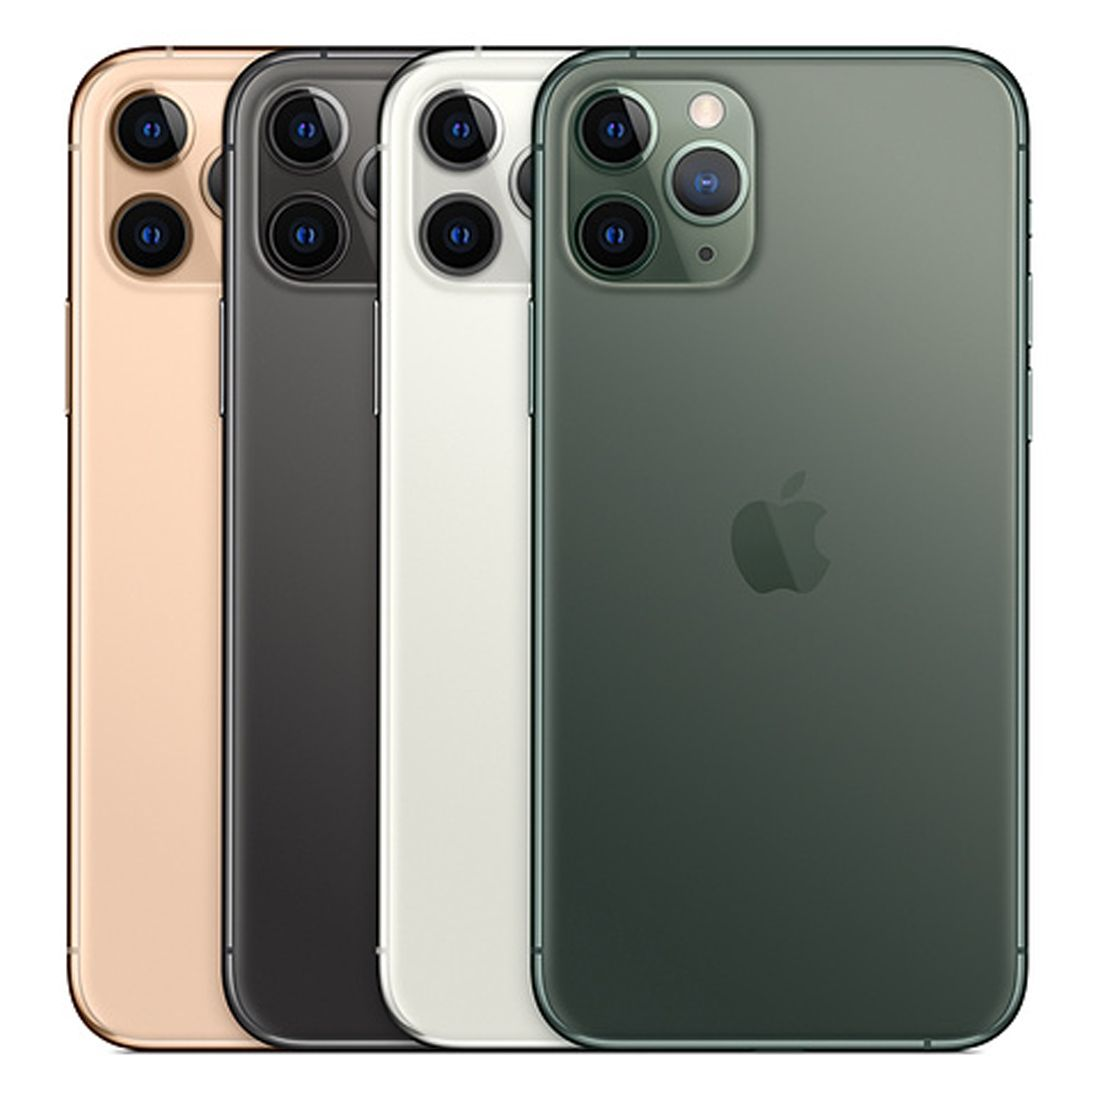 Image of Apple iPhone 11 Pro 64GB - Space Grey - 190199388758